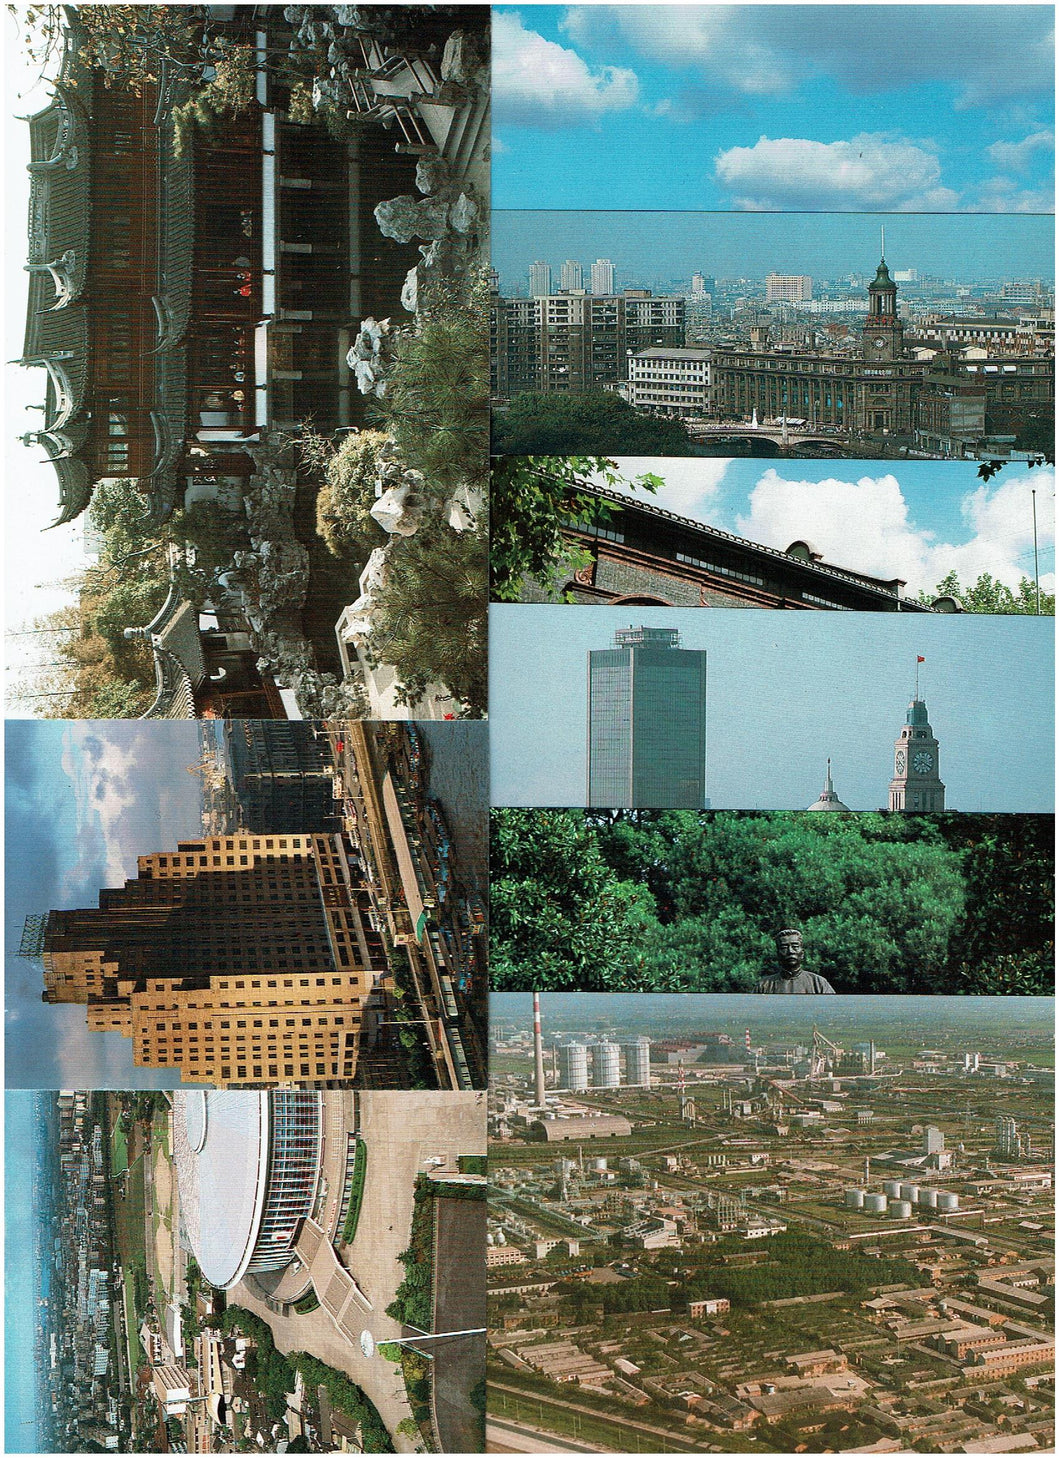 China 1987 Postal post cards series of 9